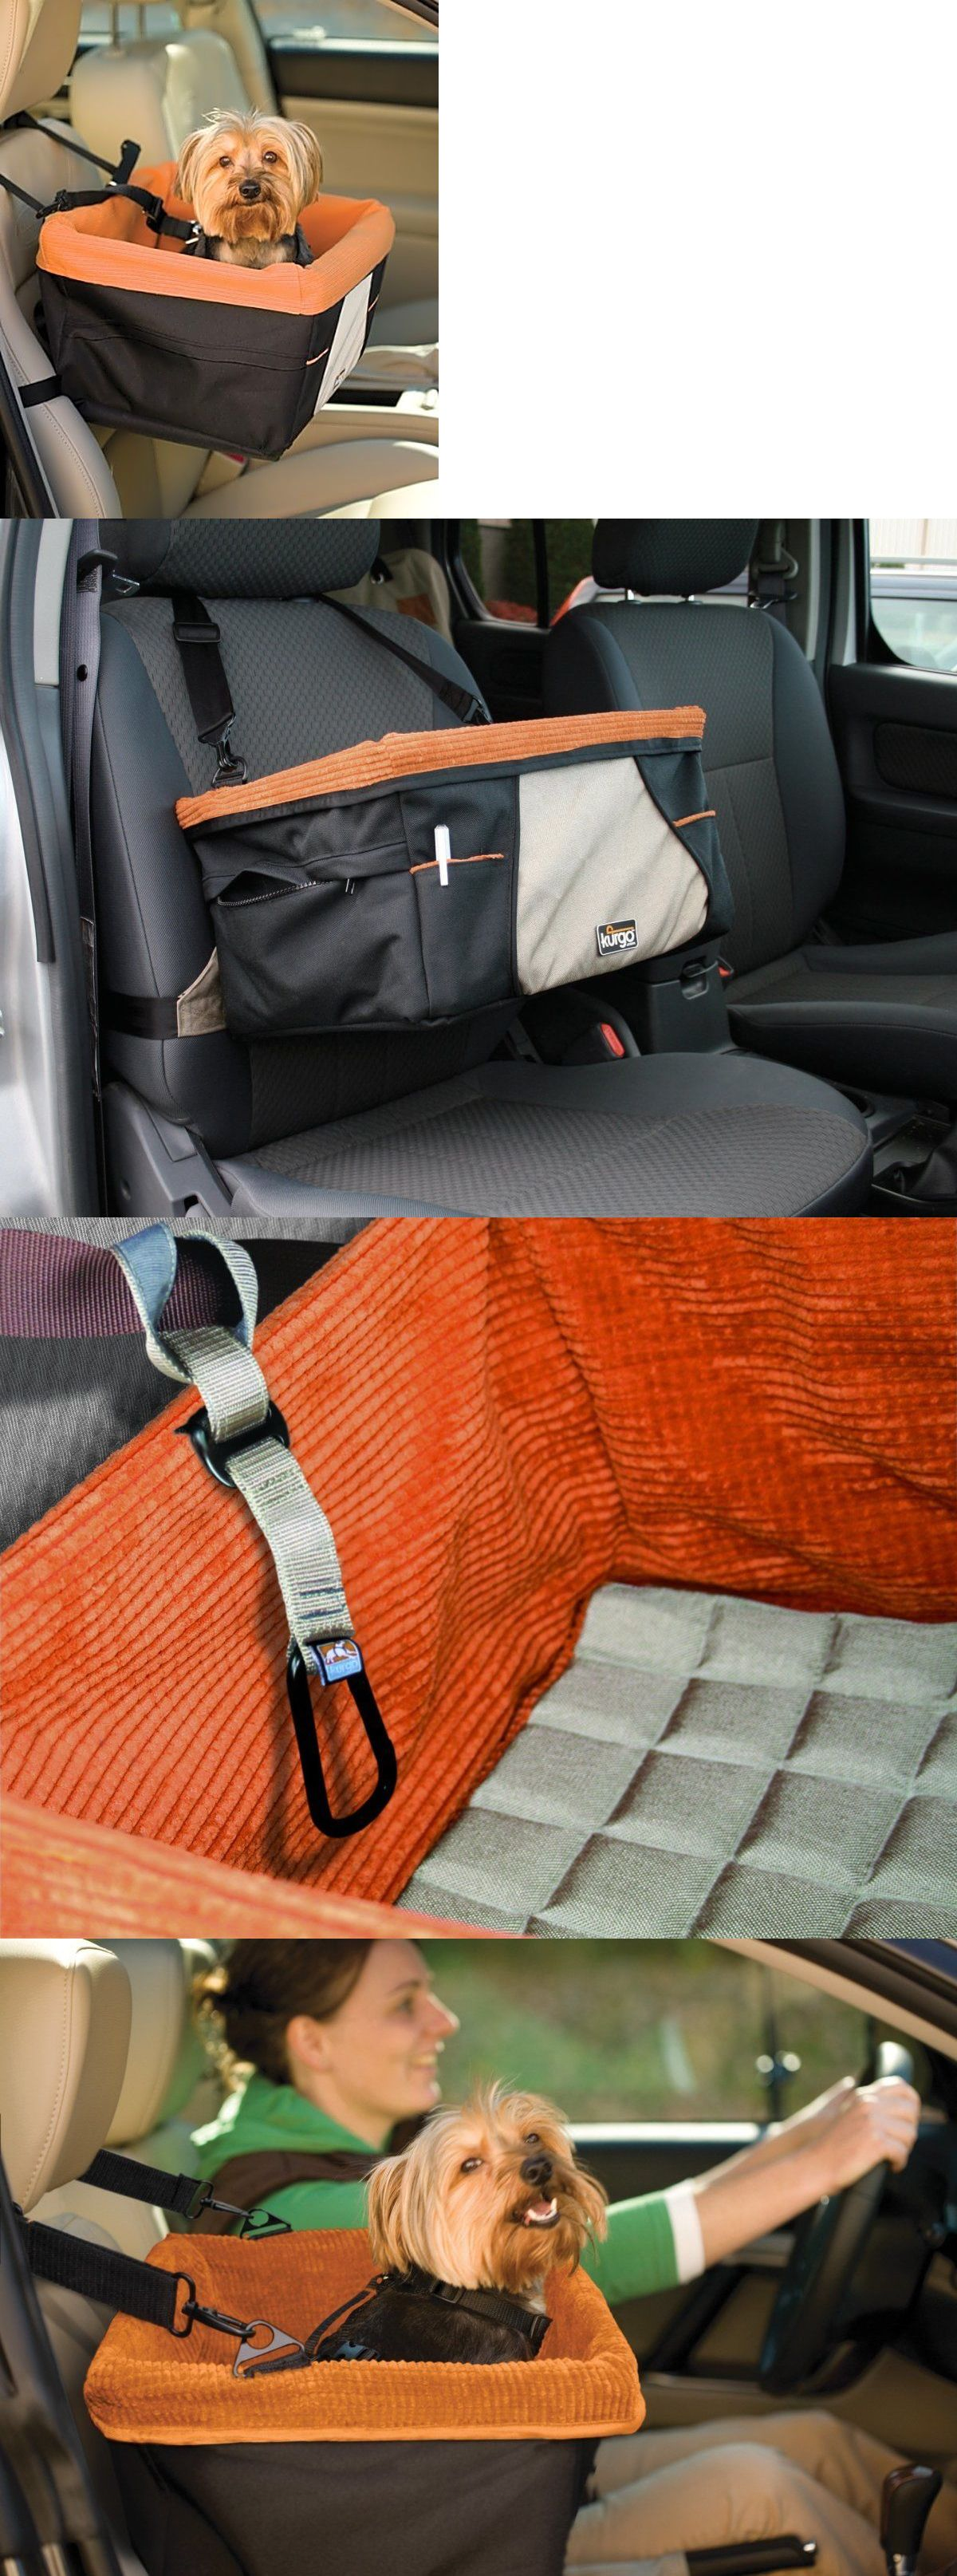 Car seats and barriers kurgo skybox dog booster seat for cars